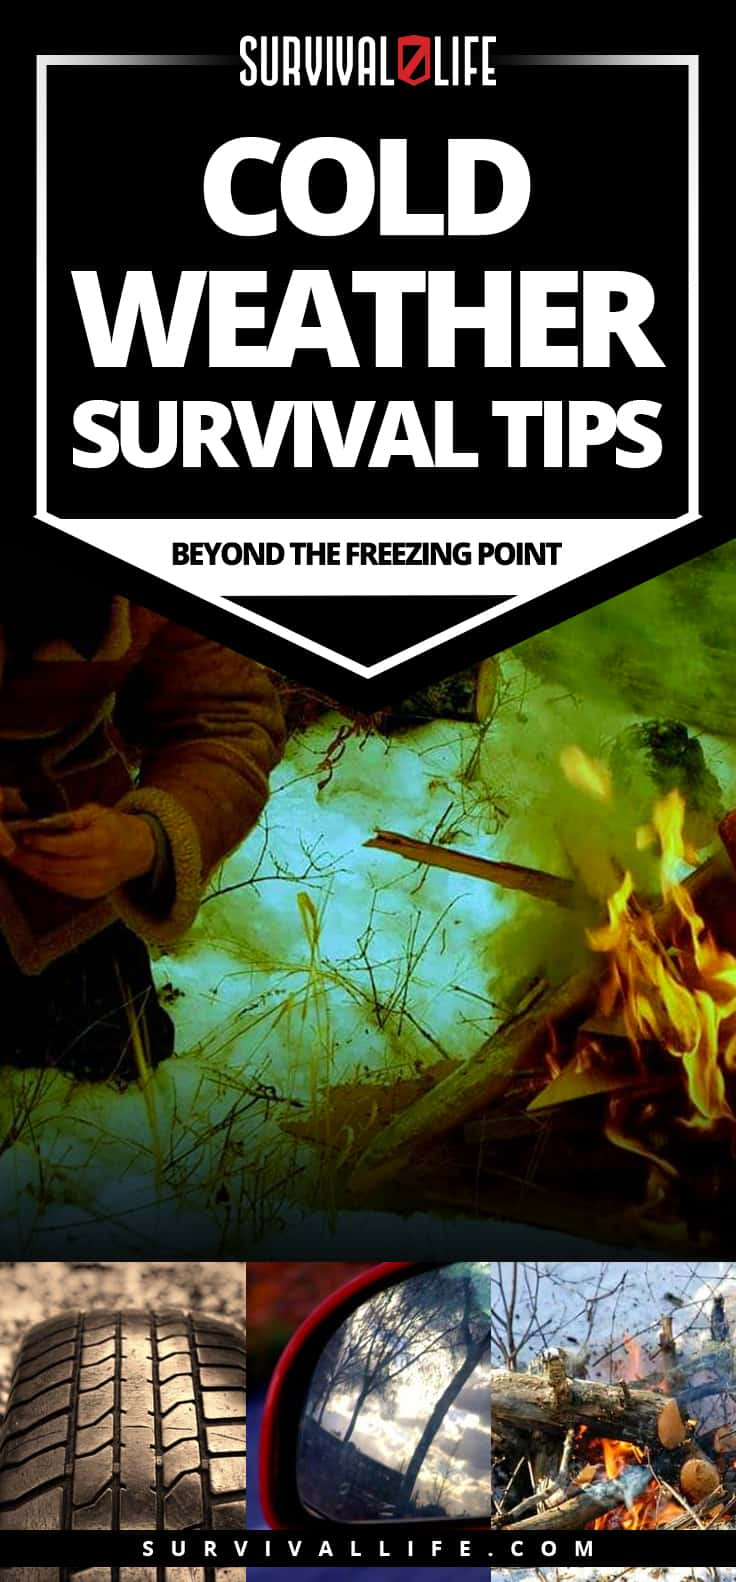 Beyond The Freezing Point | Cold Weather Survival Tips | how to survive in cold weather in the wilderness